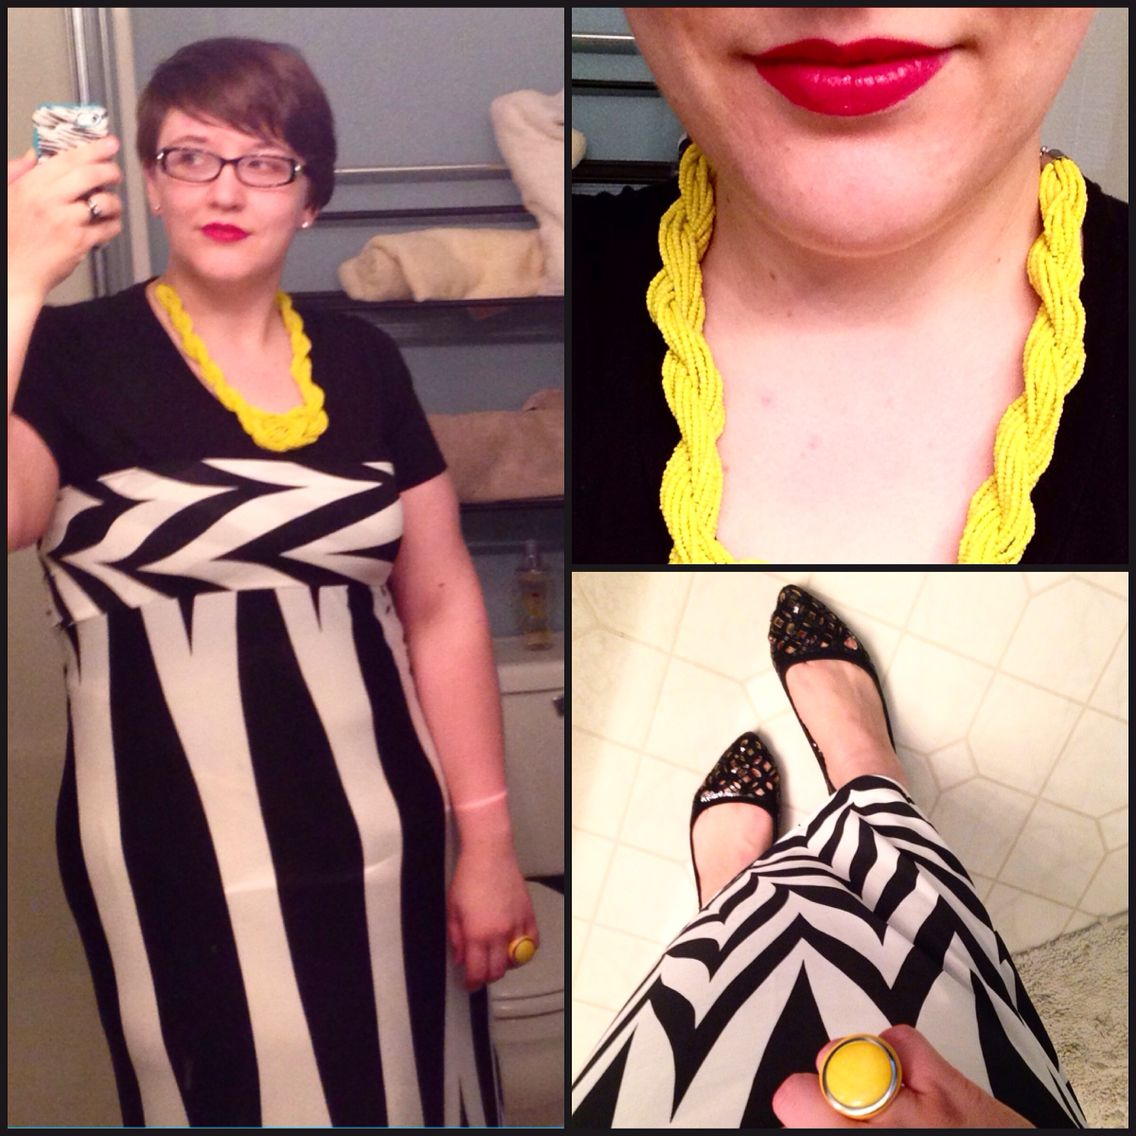 #DYTType4 #ootd for work at the front desk. Shoes from #CharmingCharlie, necklace from #eBay. Maxi from #Zulily. #dyt #dressingyourtruth #type4bold #instafashion #MomFashion #wiw #wiwn #wiwt #boldlips